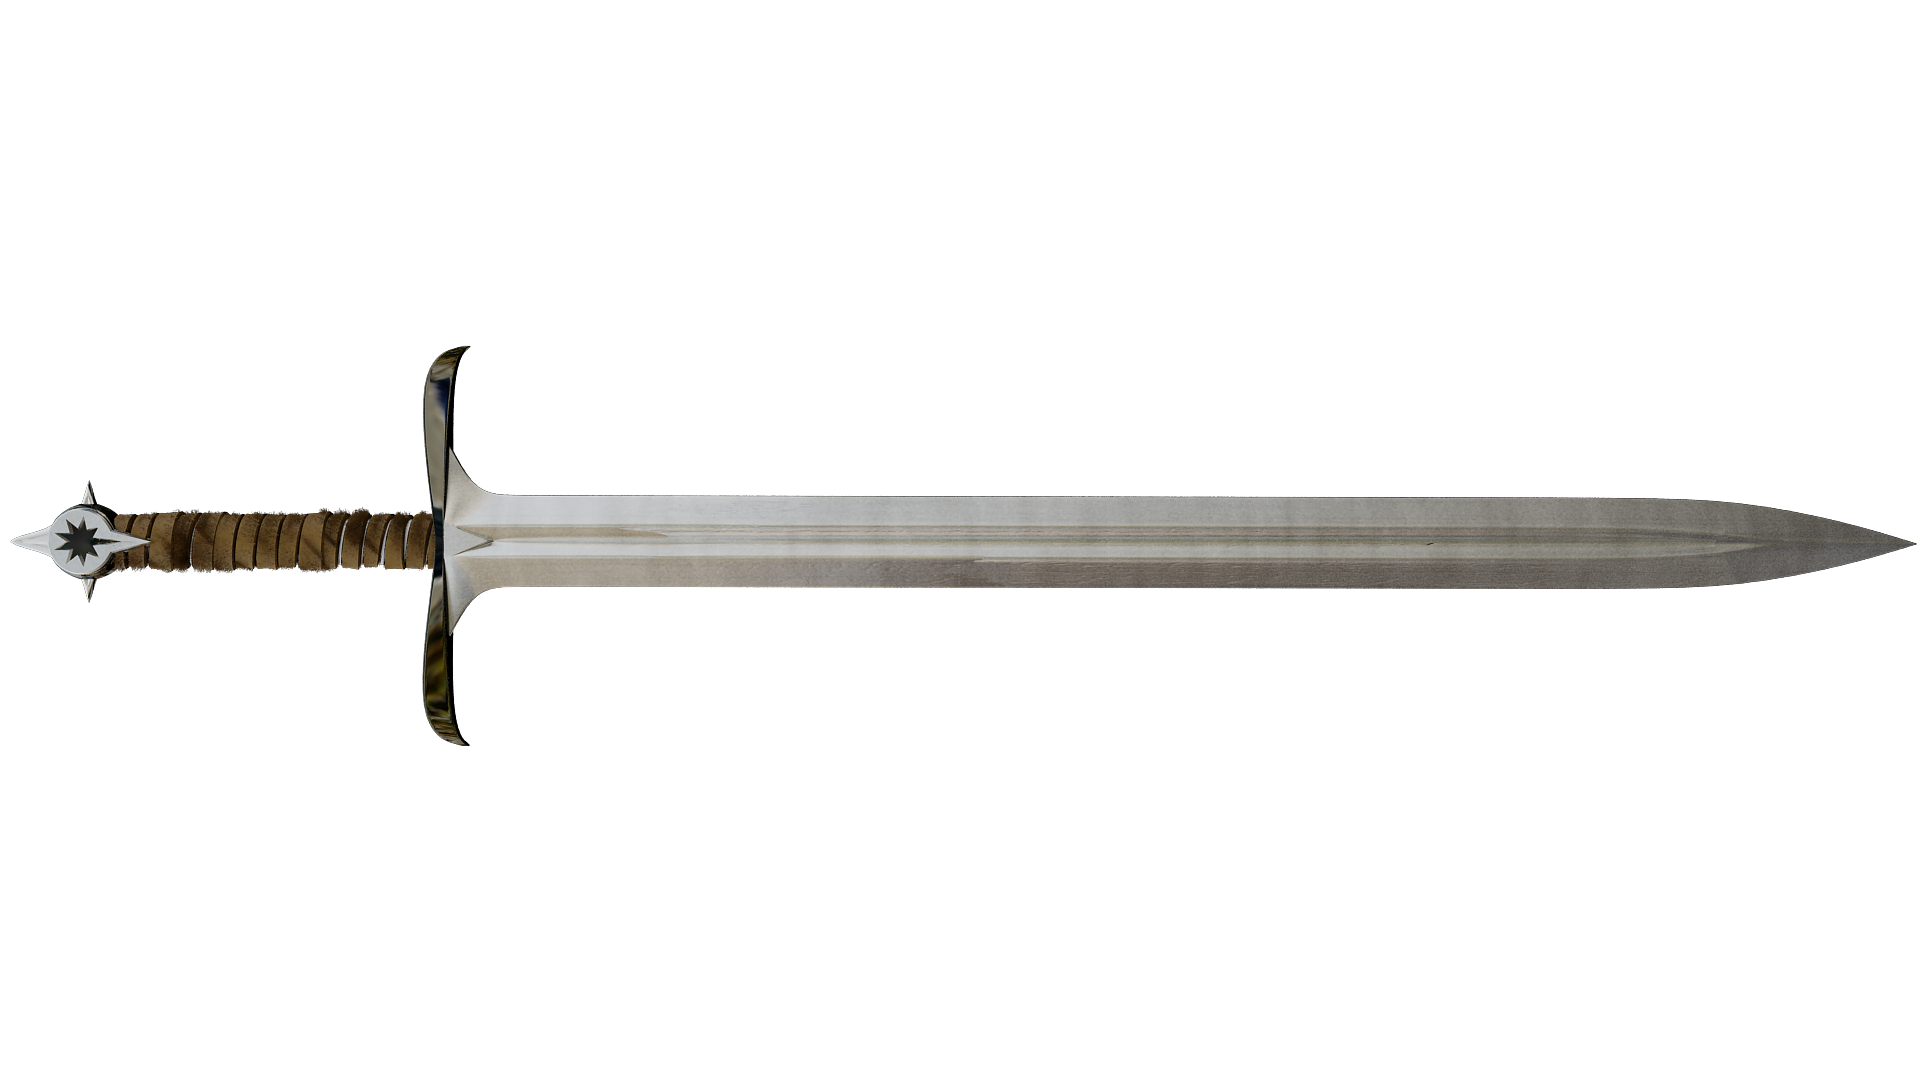 Religion Sword-hd-png-sword-png-image-1920